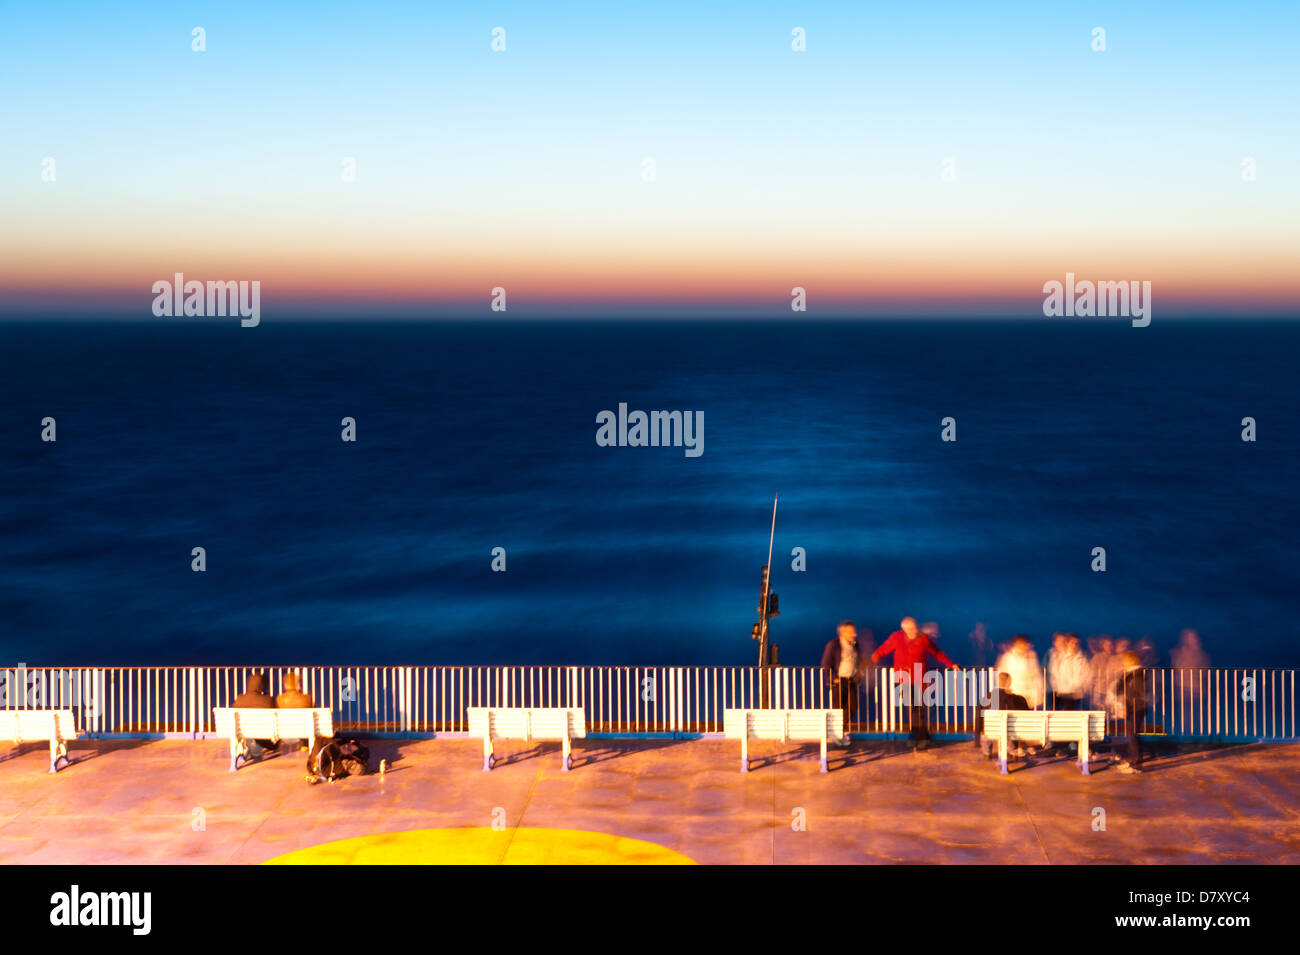 deck ferry wake stock photos deck ferry wake stock images alamy. Black Bedroom Furniture Sets. Home Design Ideas